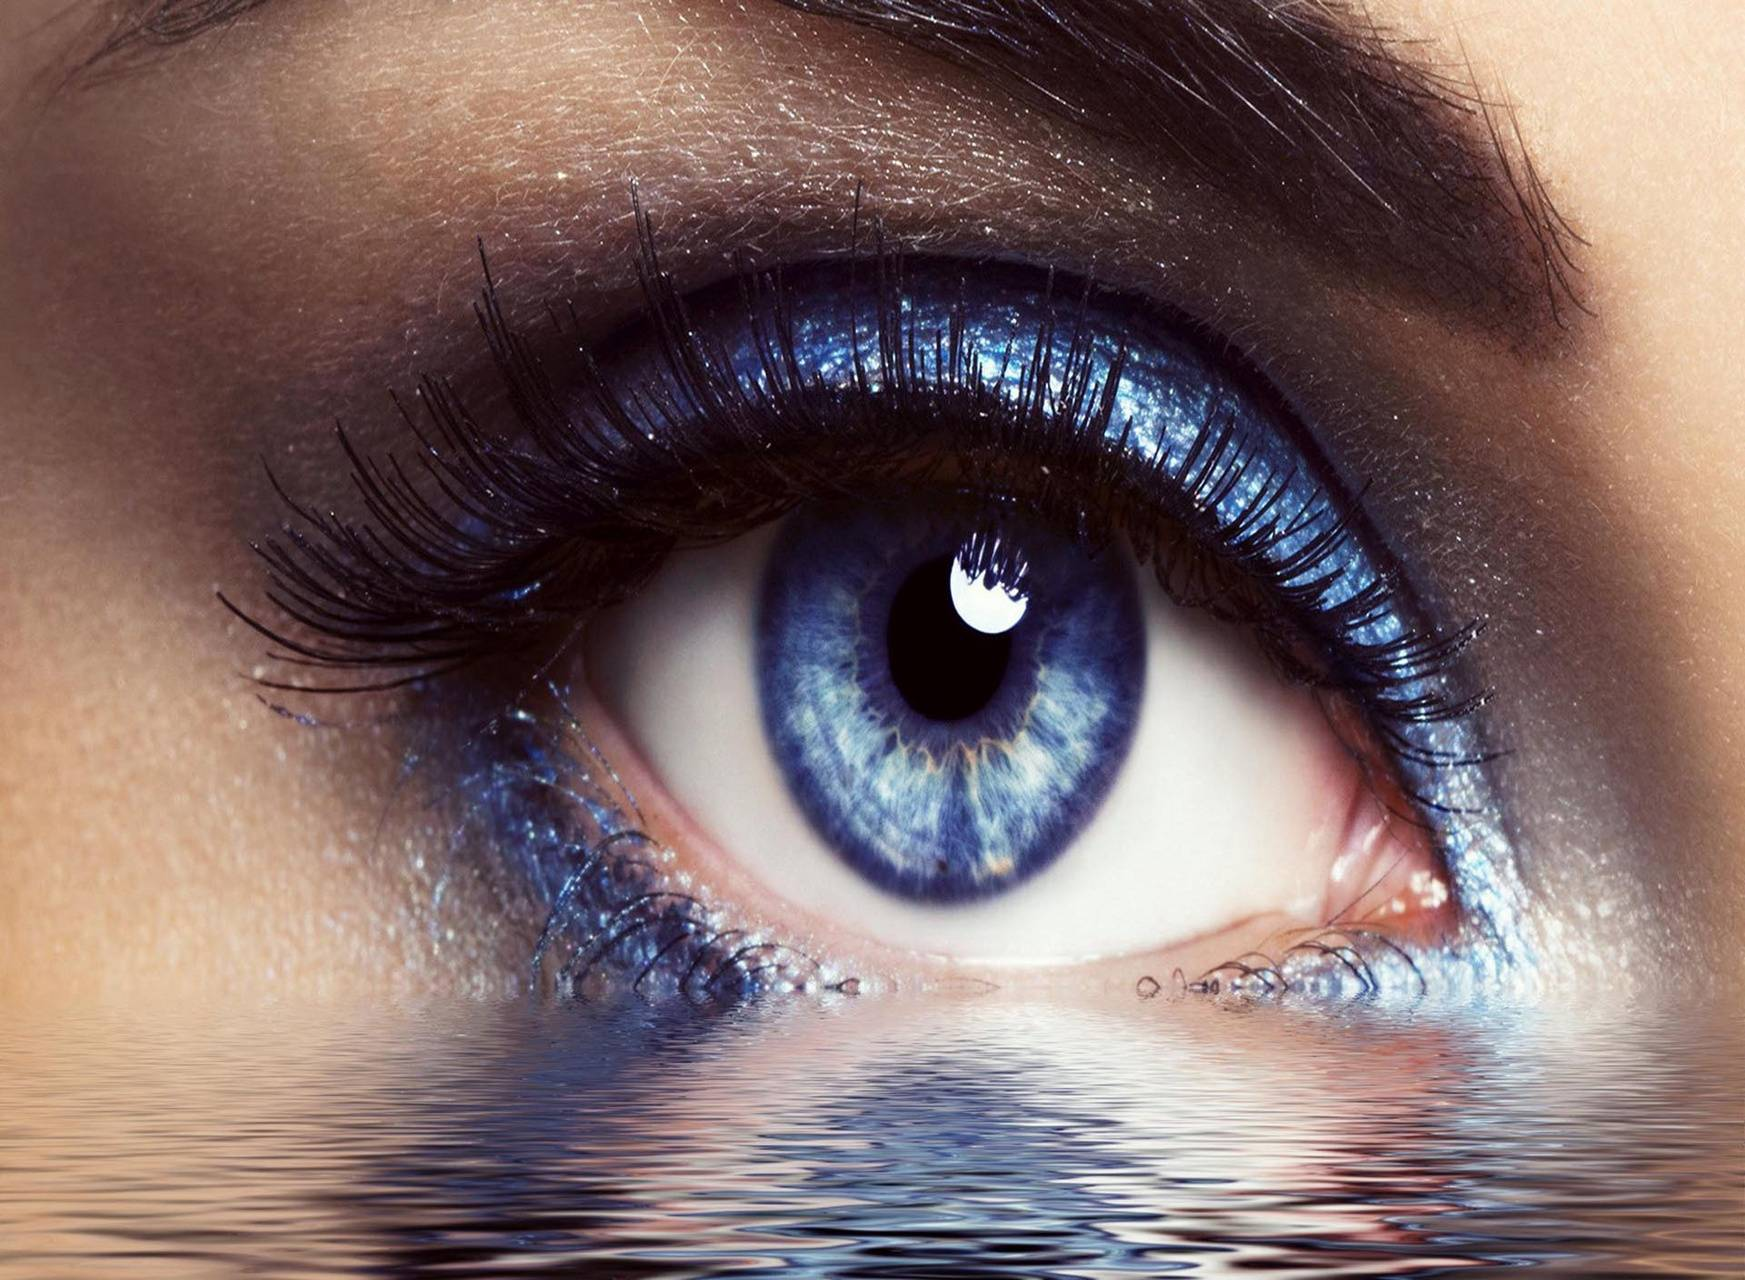 Eyes with water